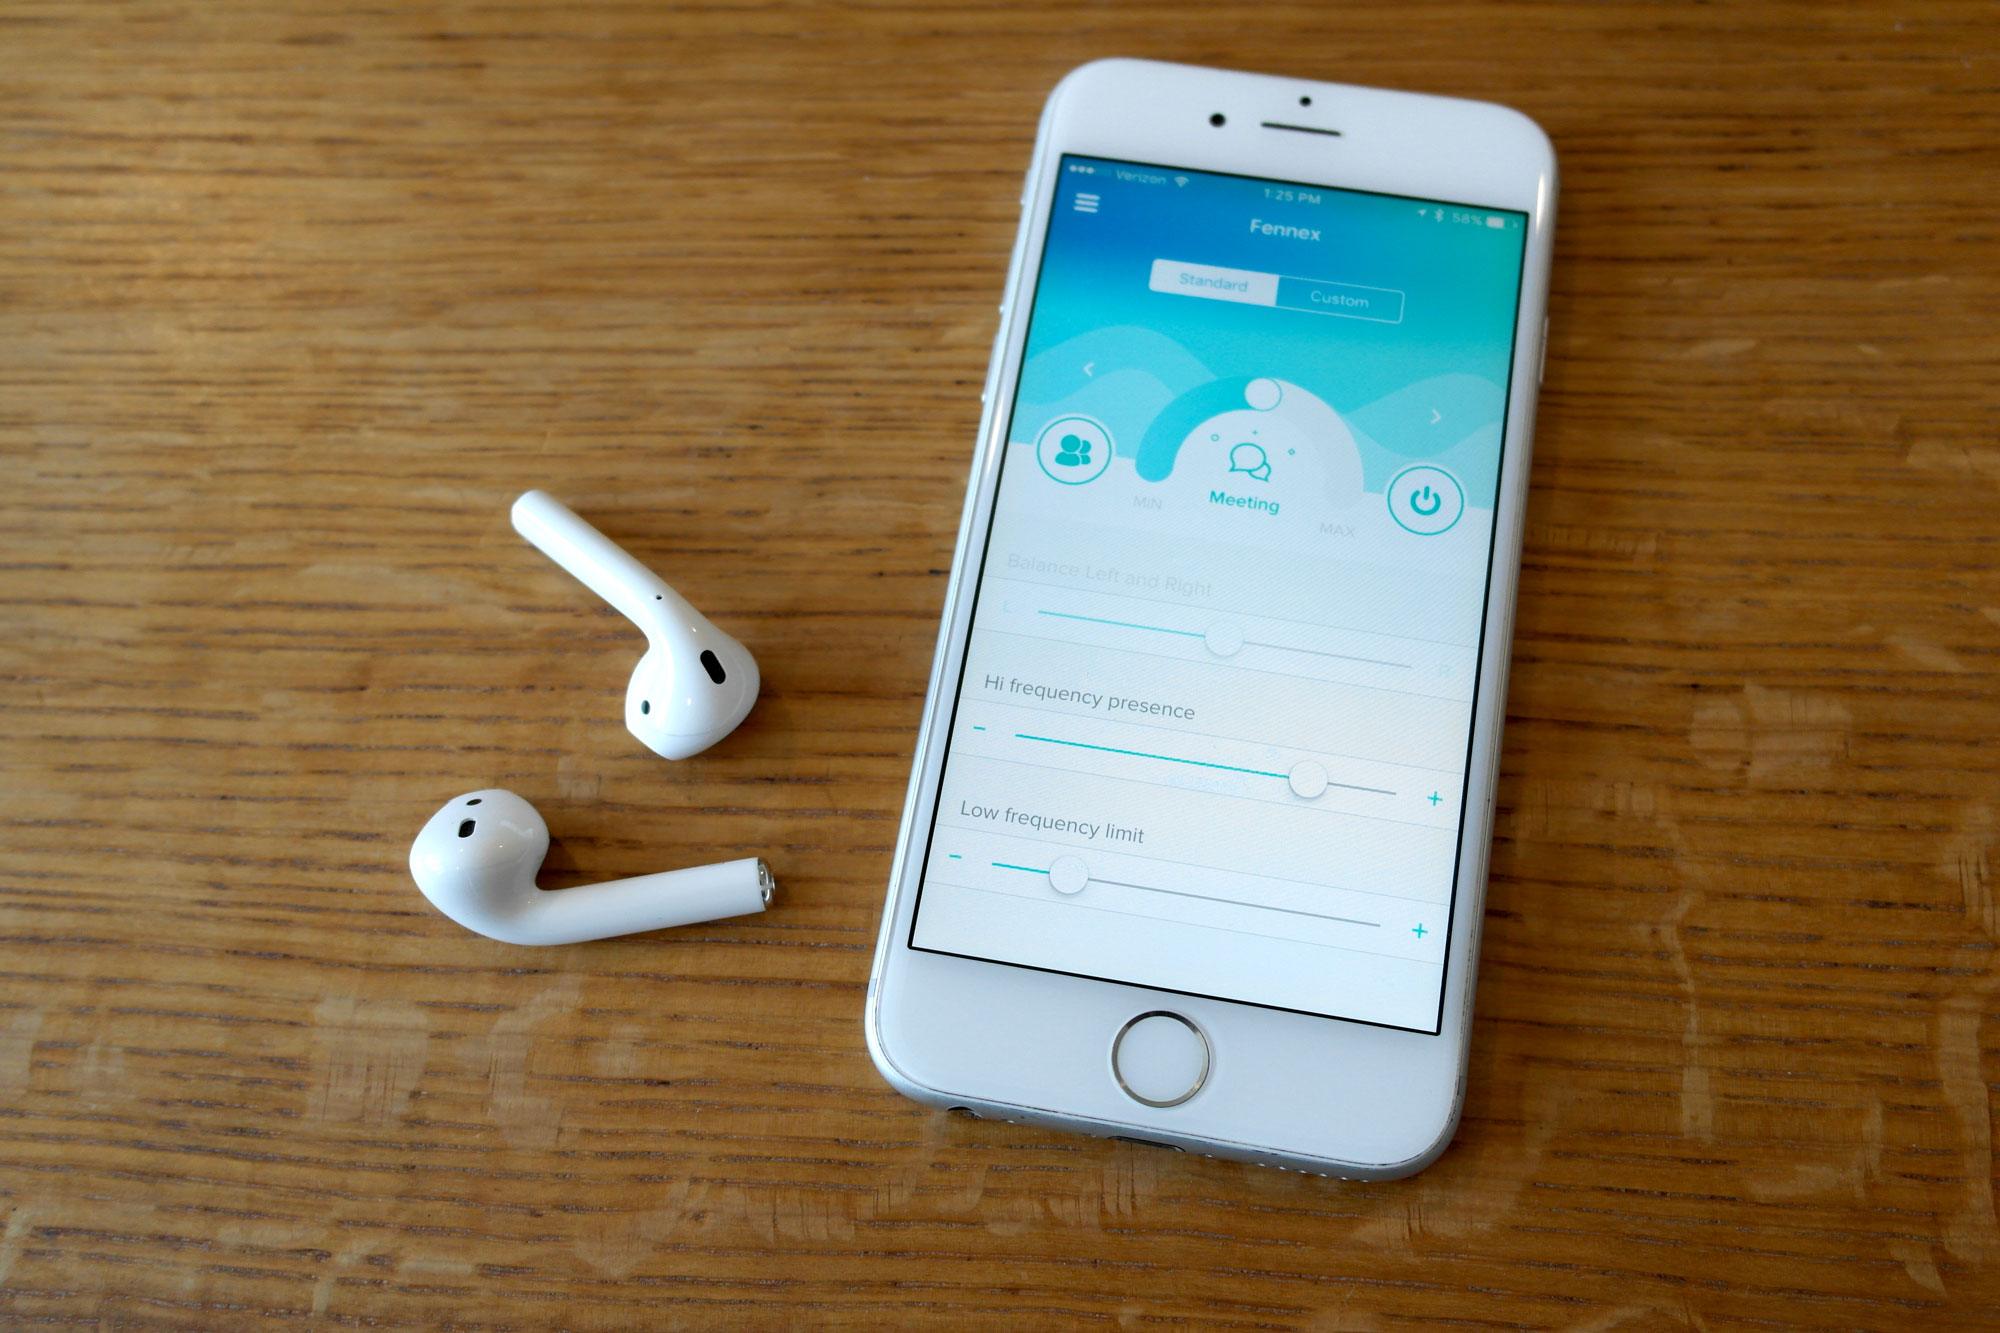 The Fennex app uses Apple's AirPods to work as a personalized wireless amplifier.